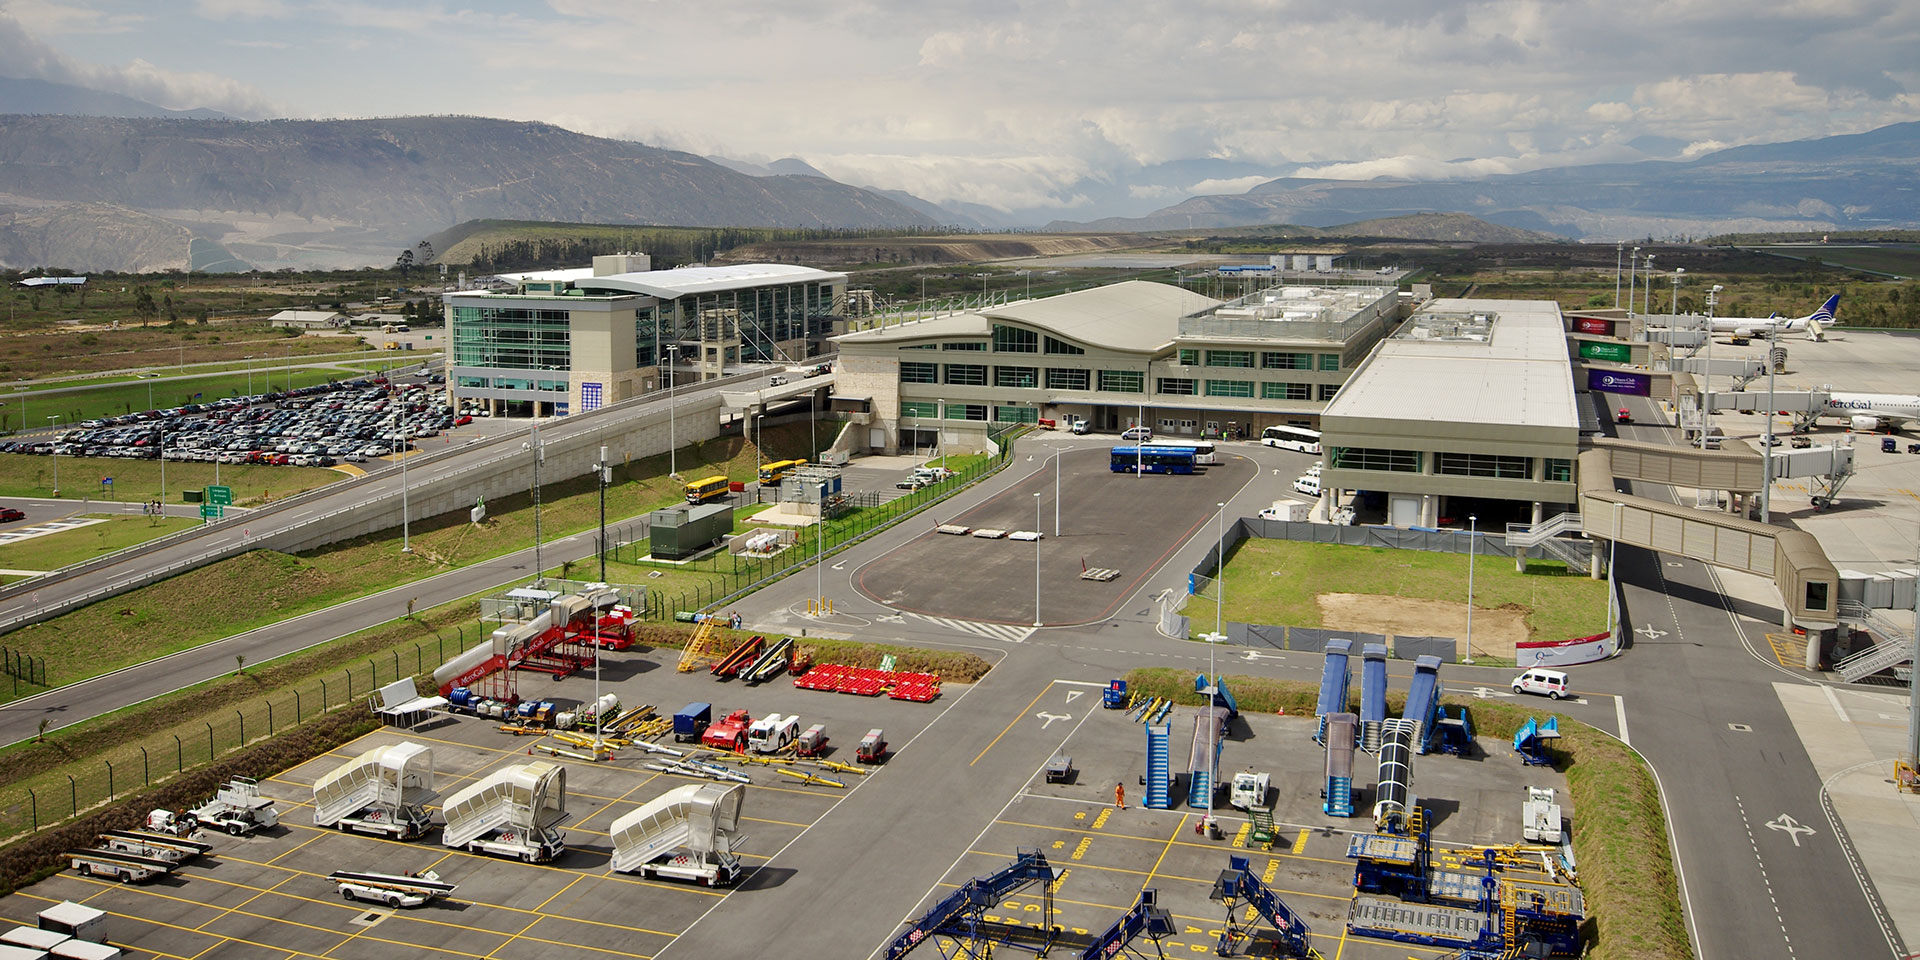 Quito Airport Building